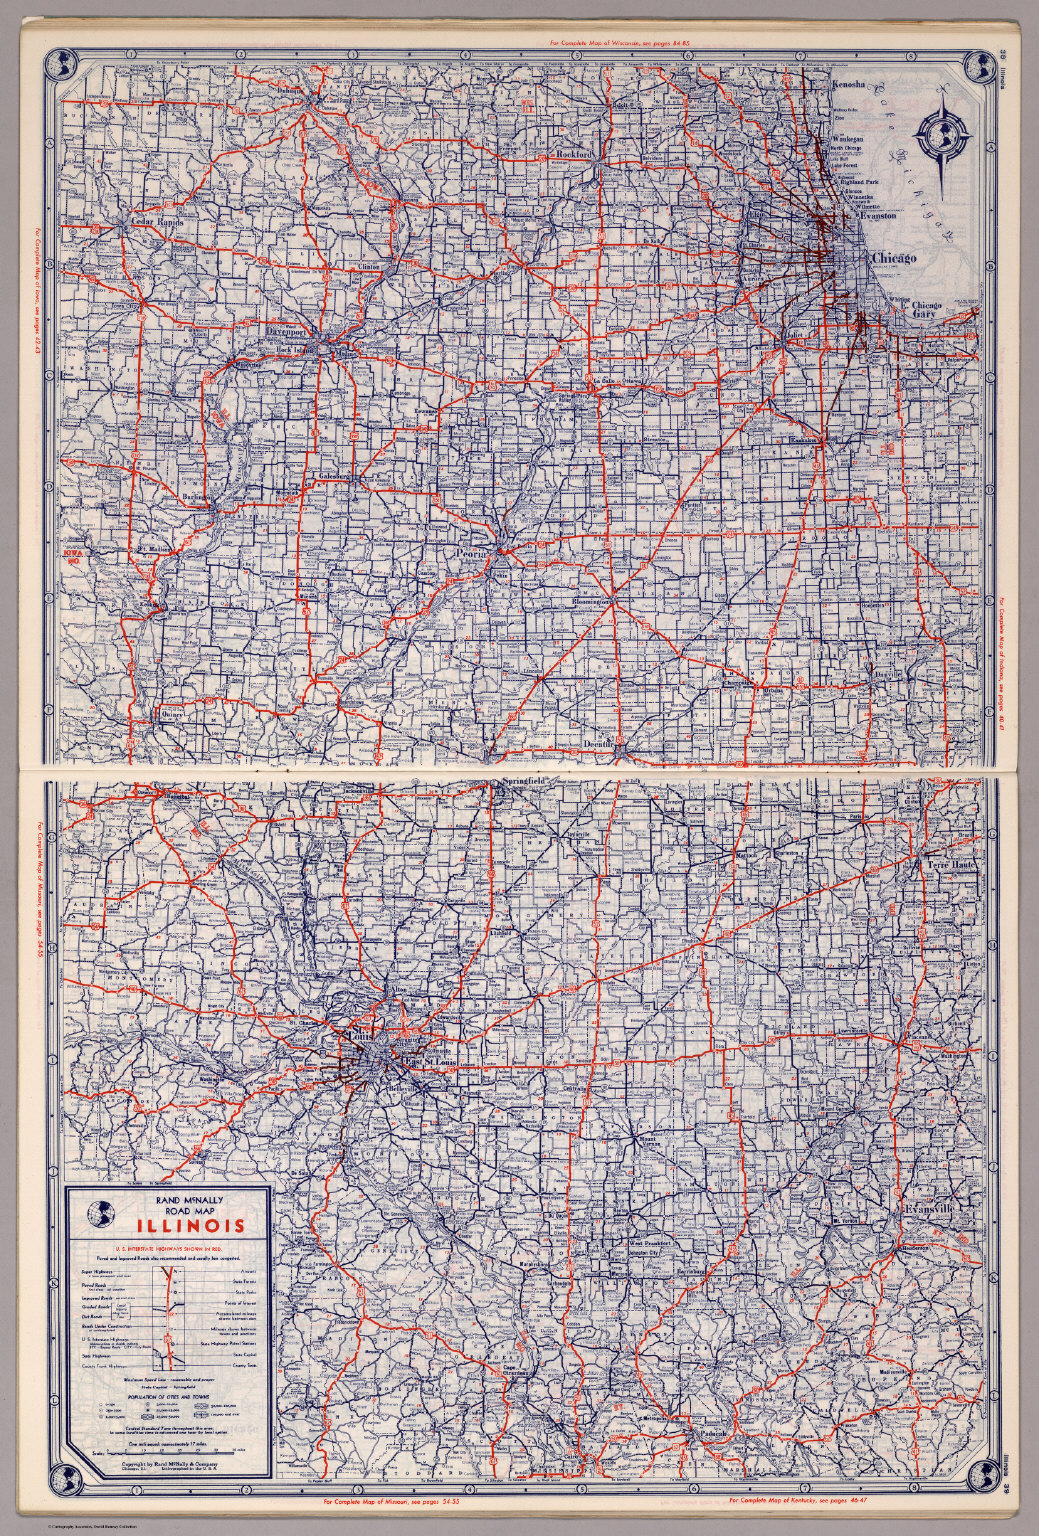 Rand mcnally road map illinois david rumsey historical map collection rand mcnally road map illinois gumiabroncs Image collections